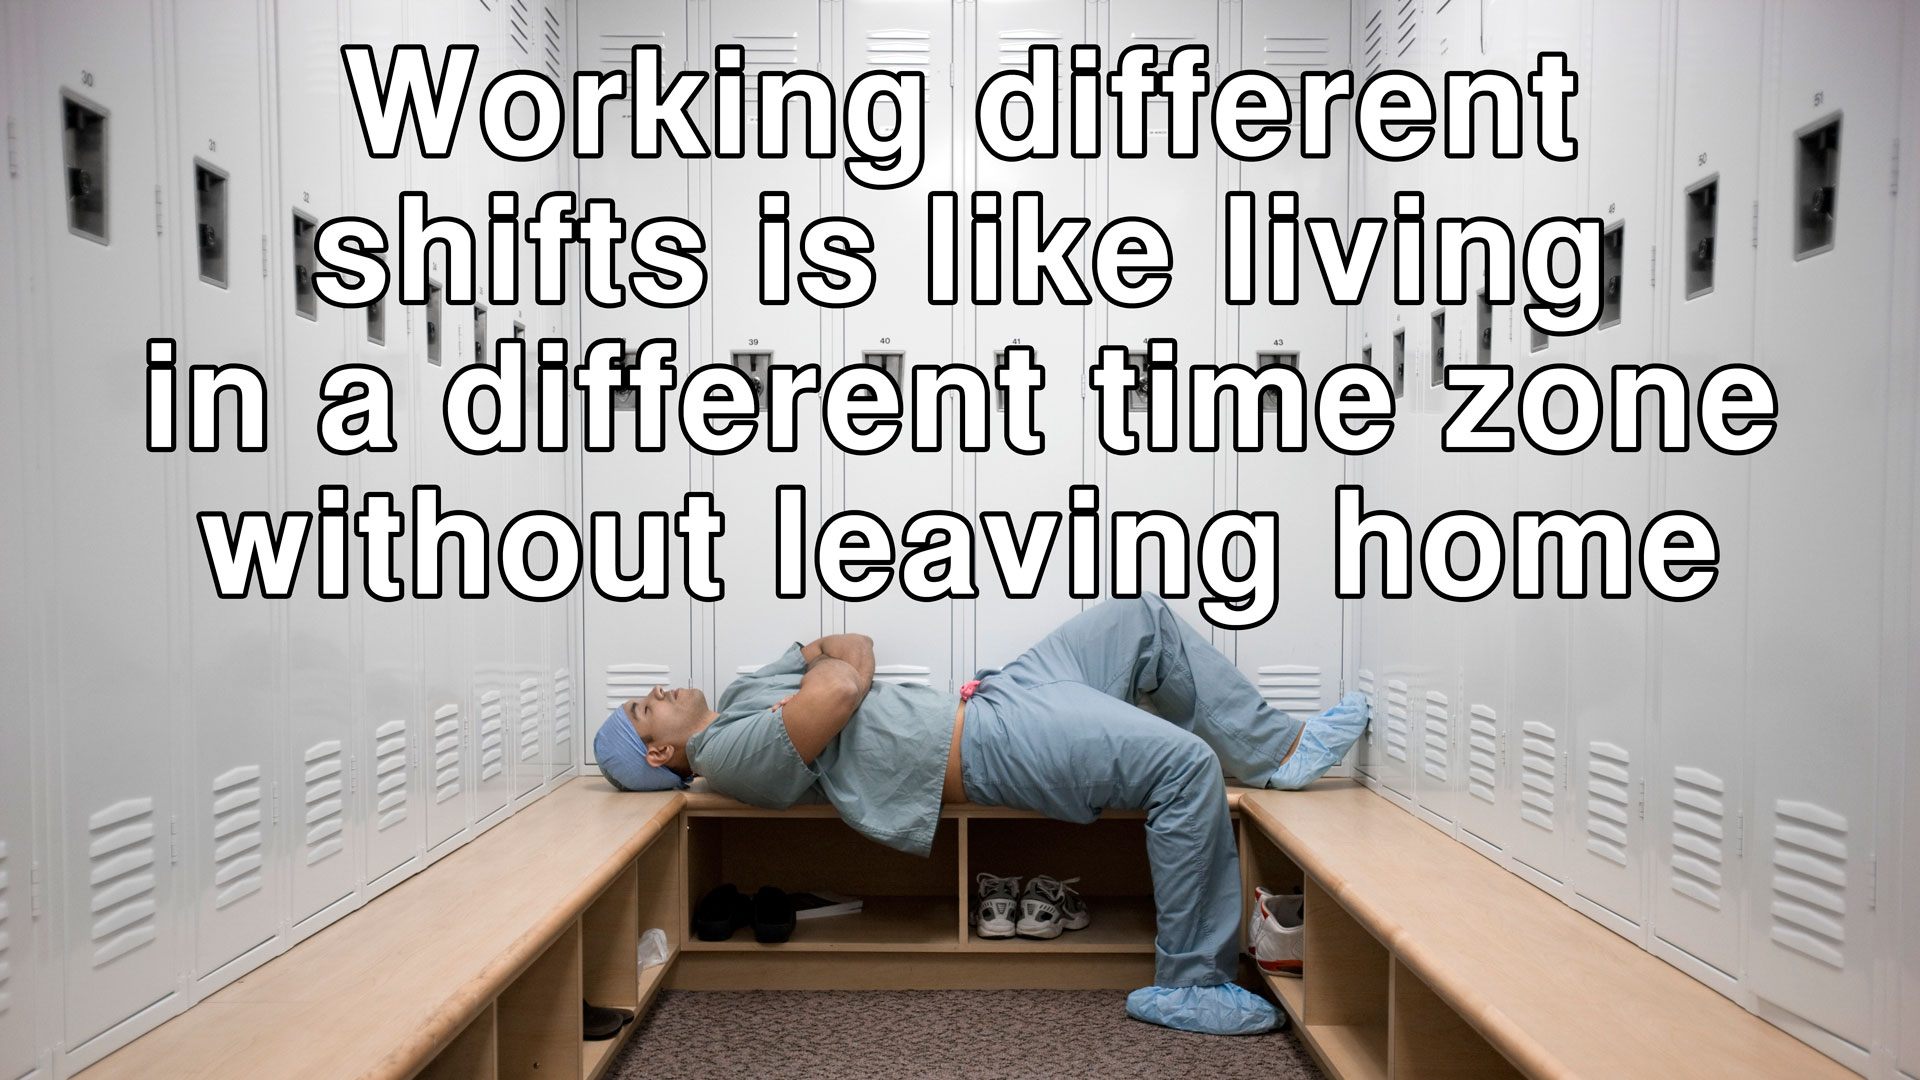 Working different shifts is like living in a different timezone without leaving home